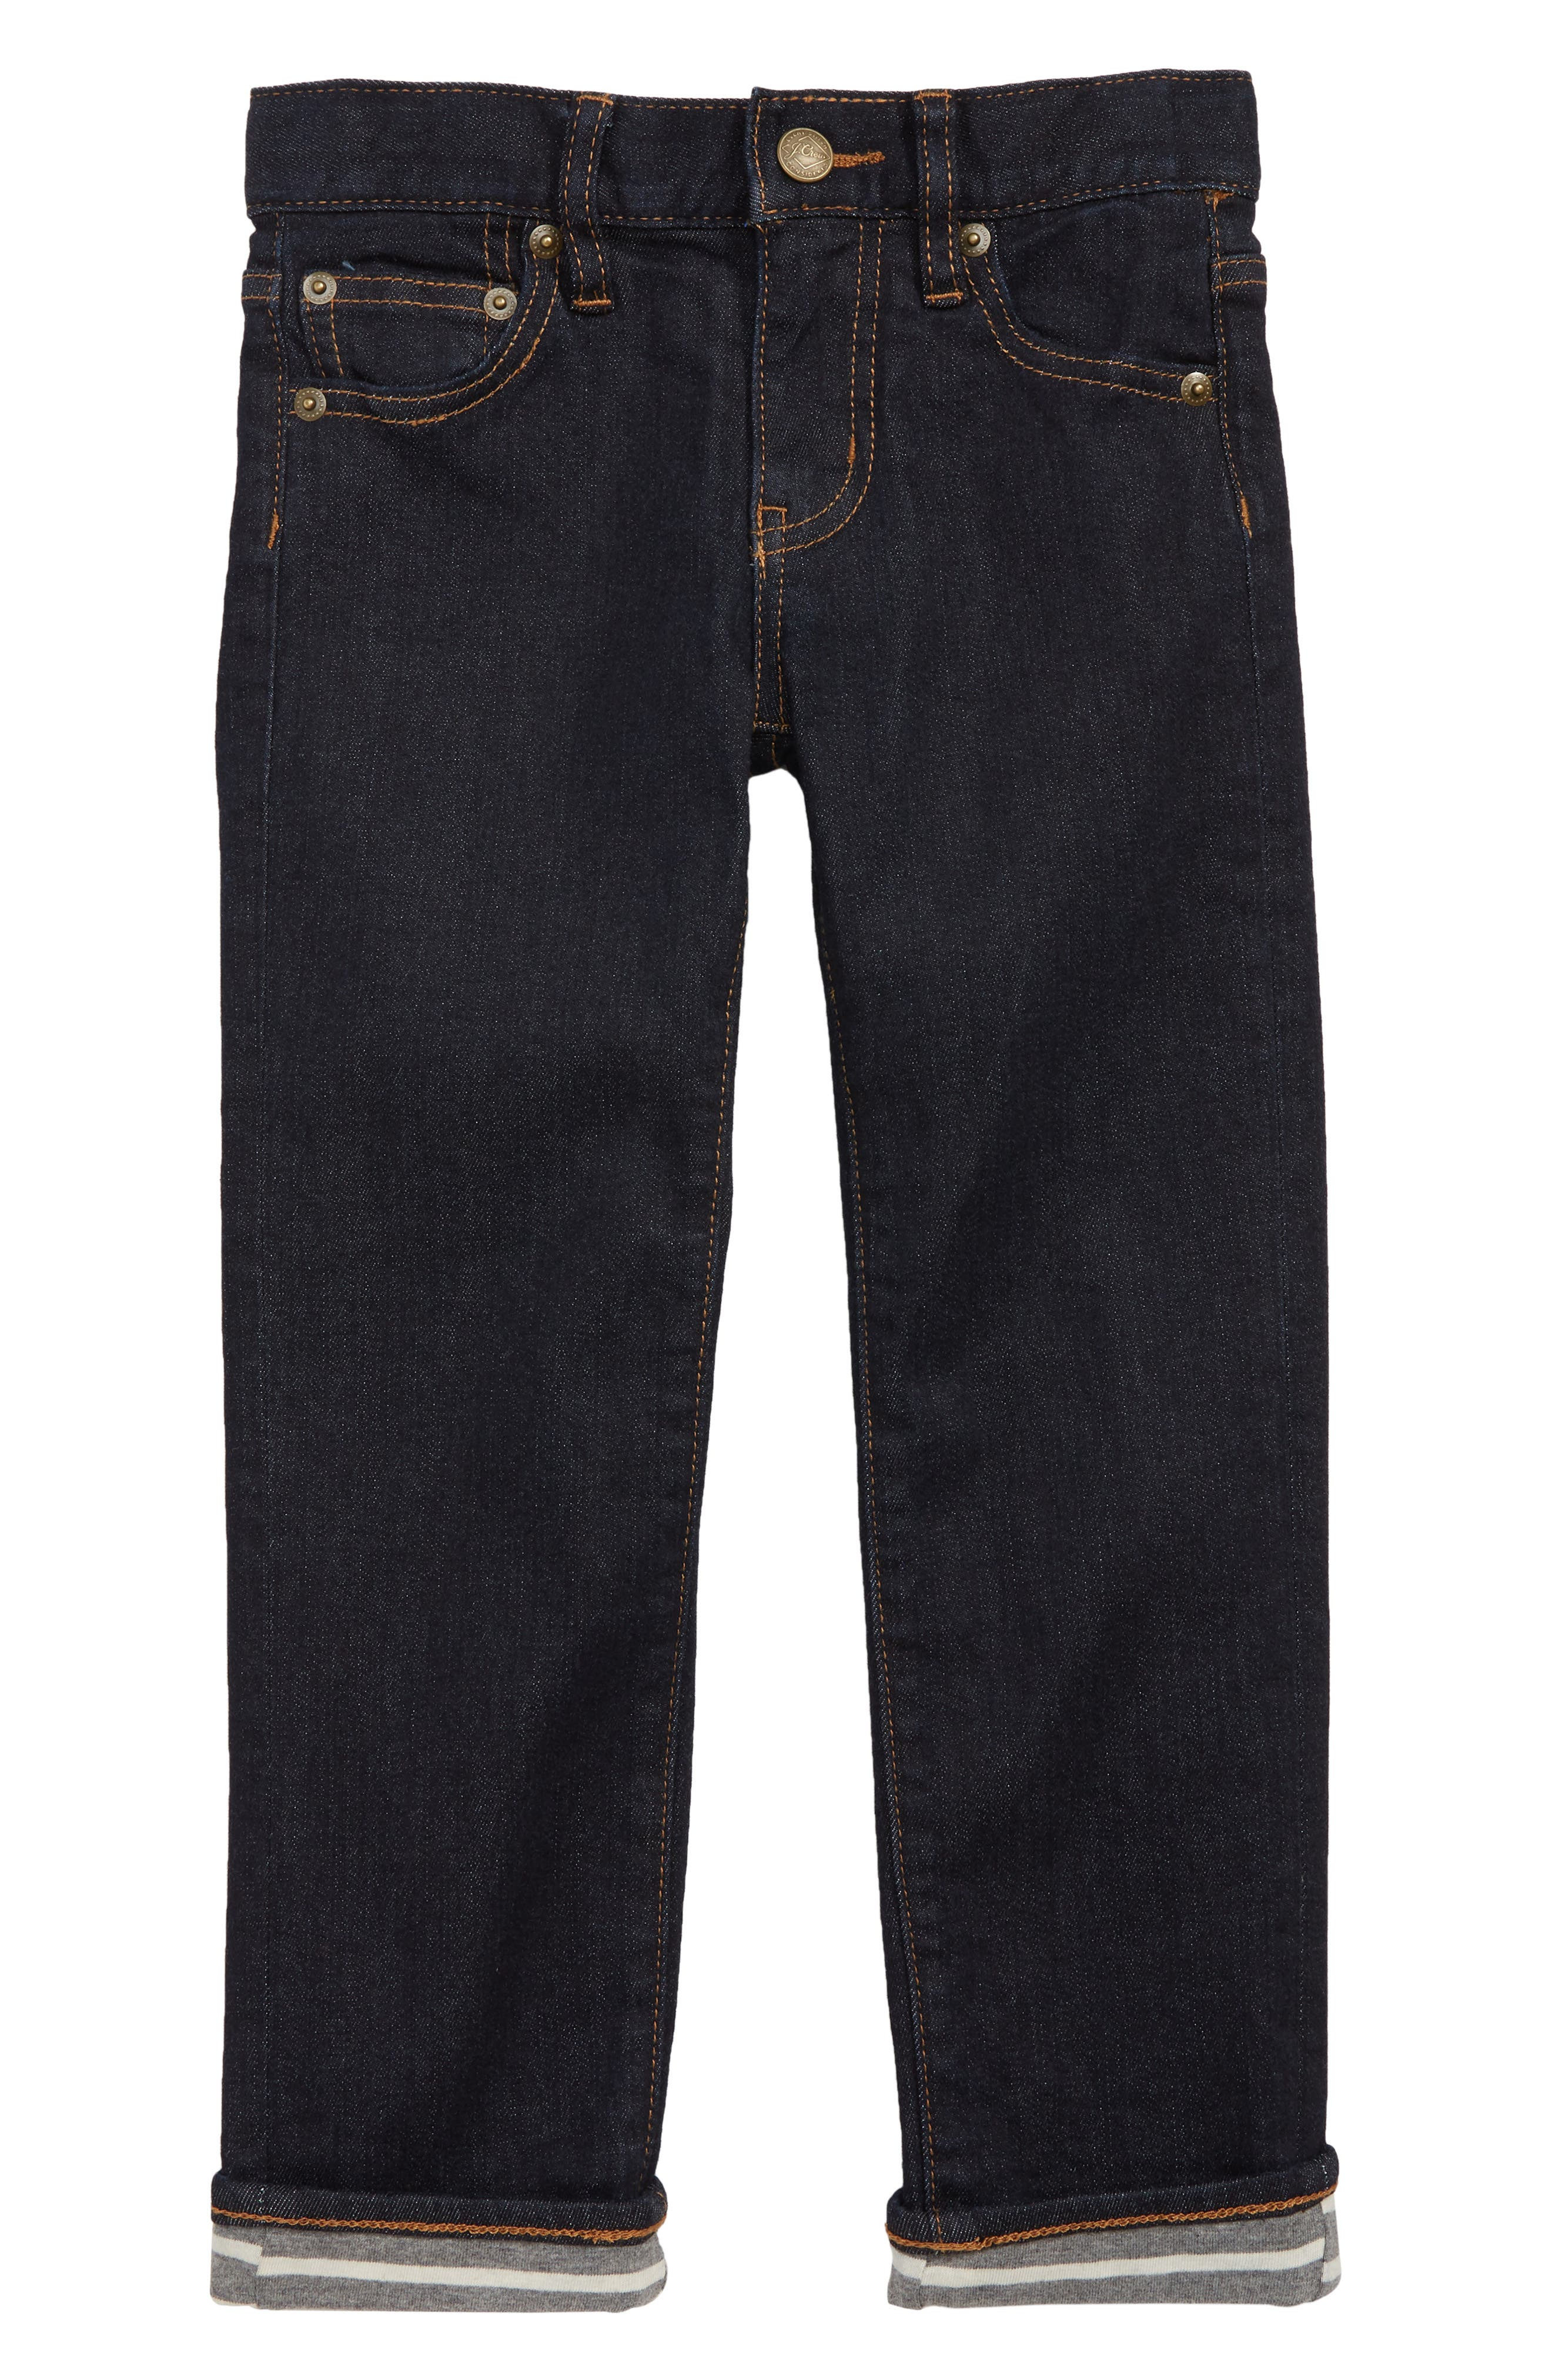 Runaround Slim Fit Lined Jeans,                             Main thumbnail 1, color,                             SKINNY RINSE